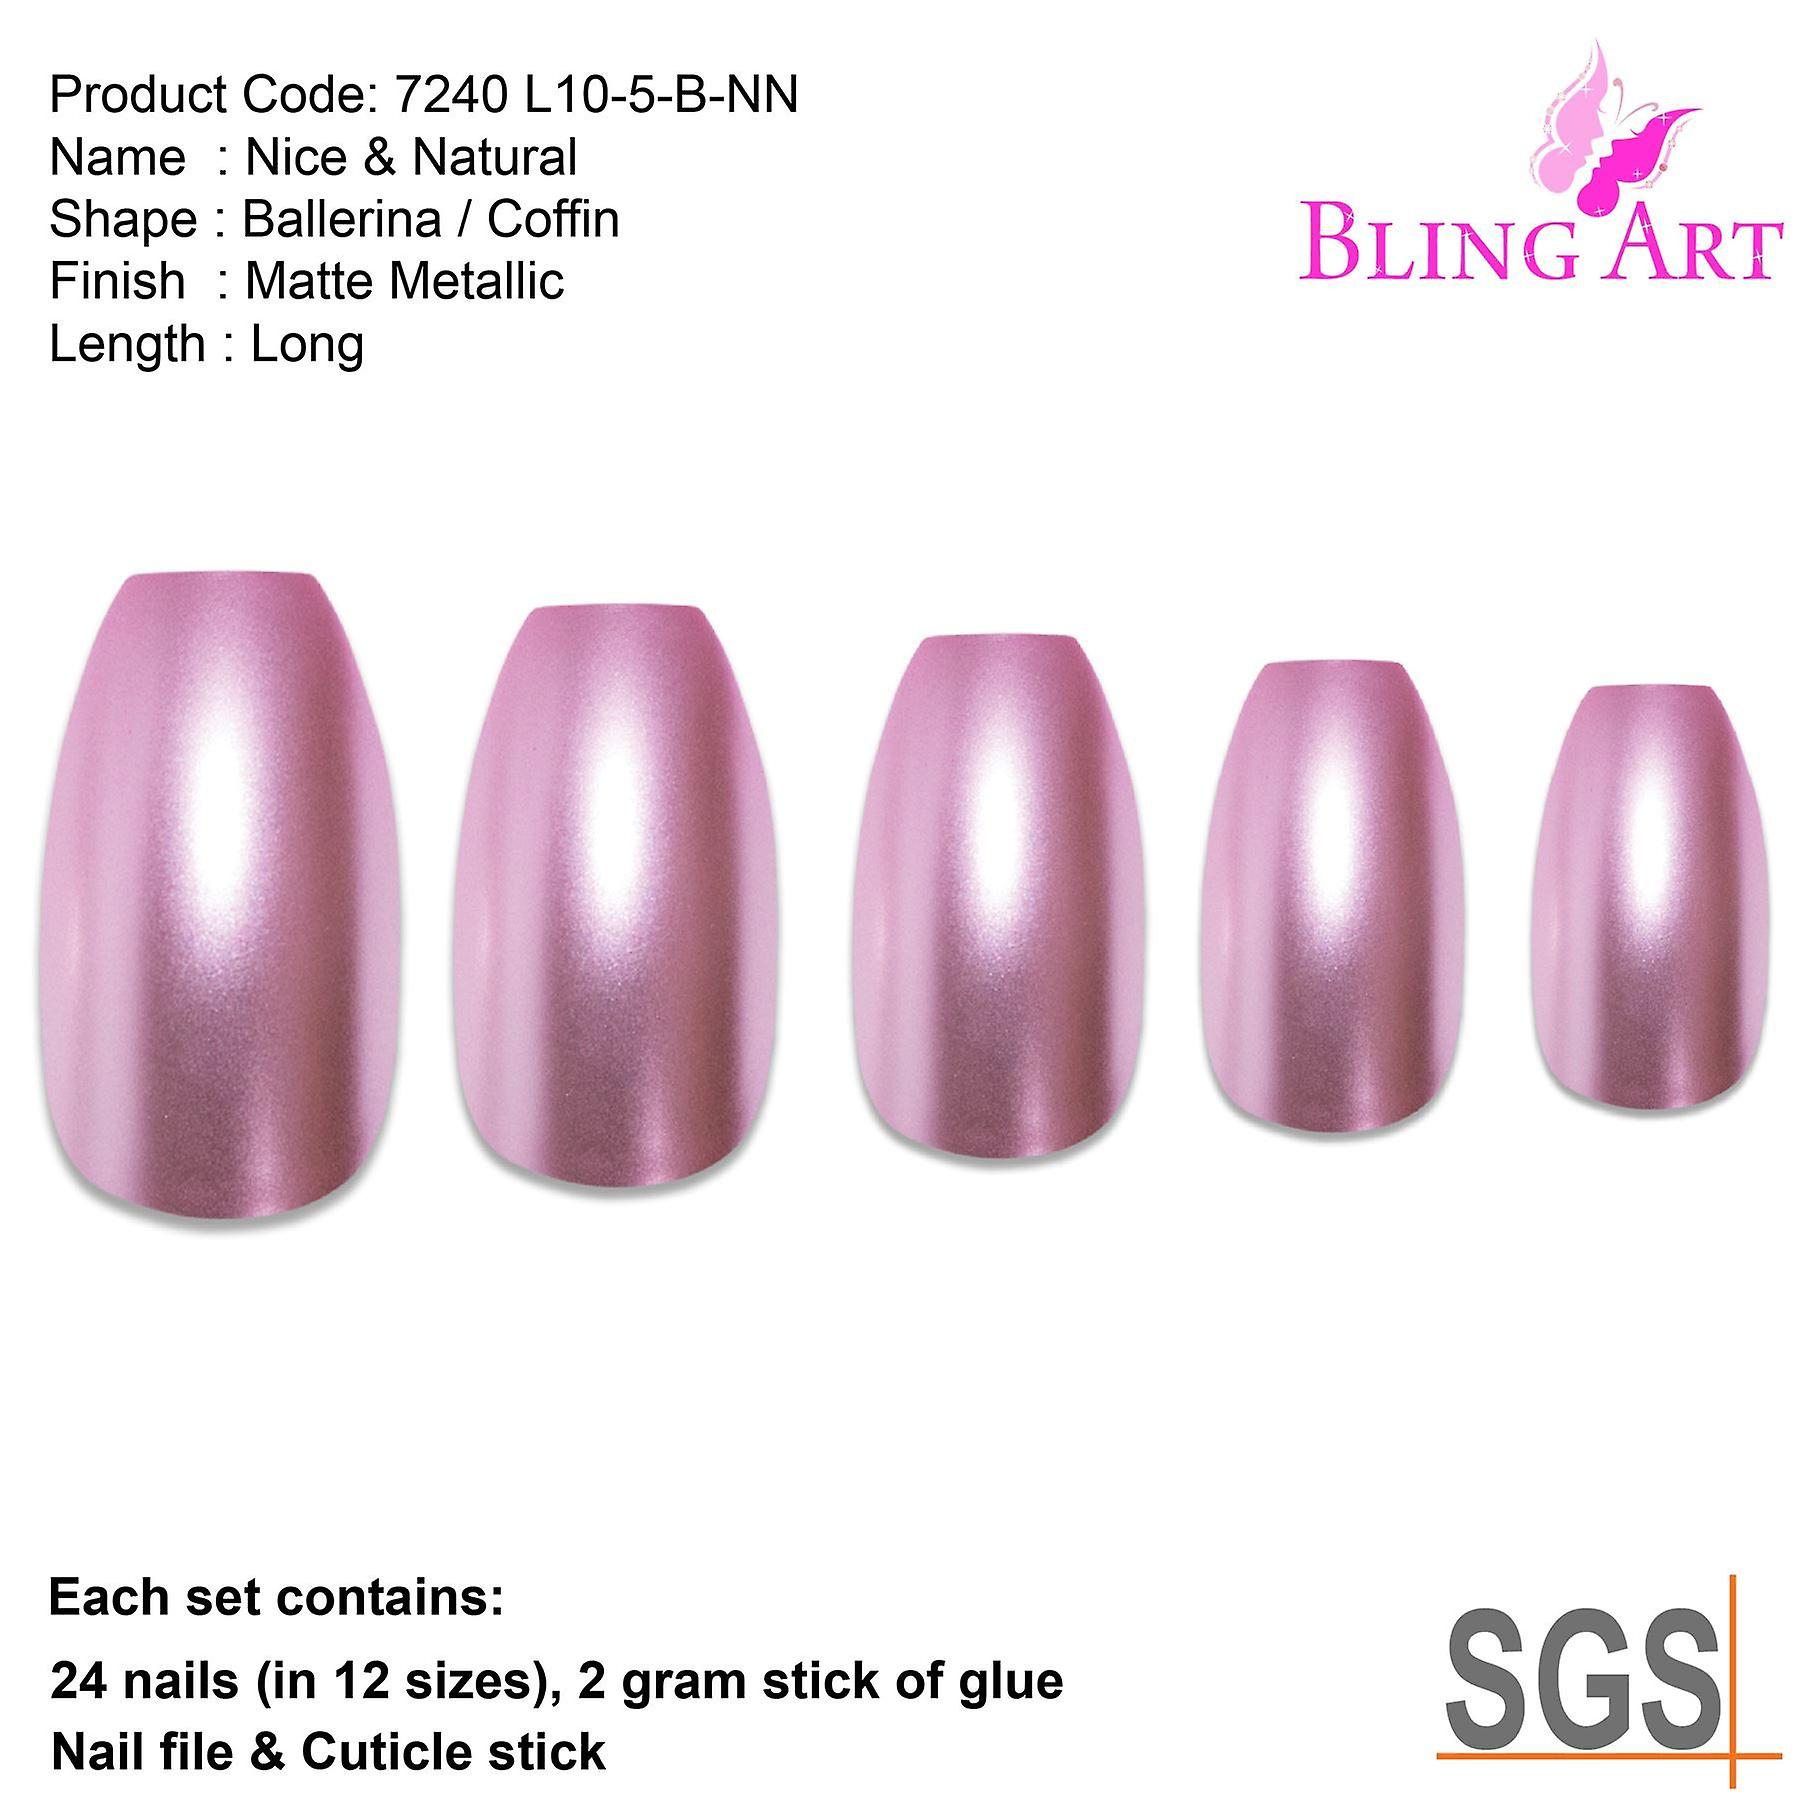 False nails by bling art pink matte metallic ballerina coffin fake acrylic tips